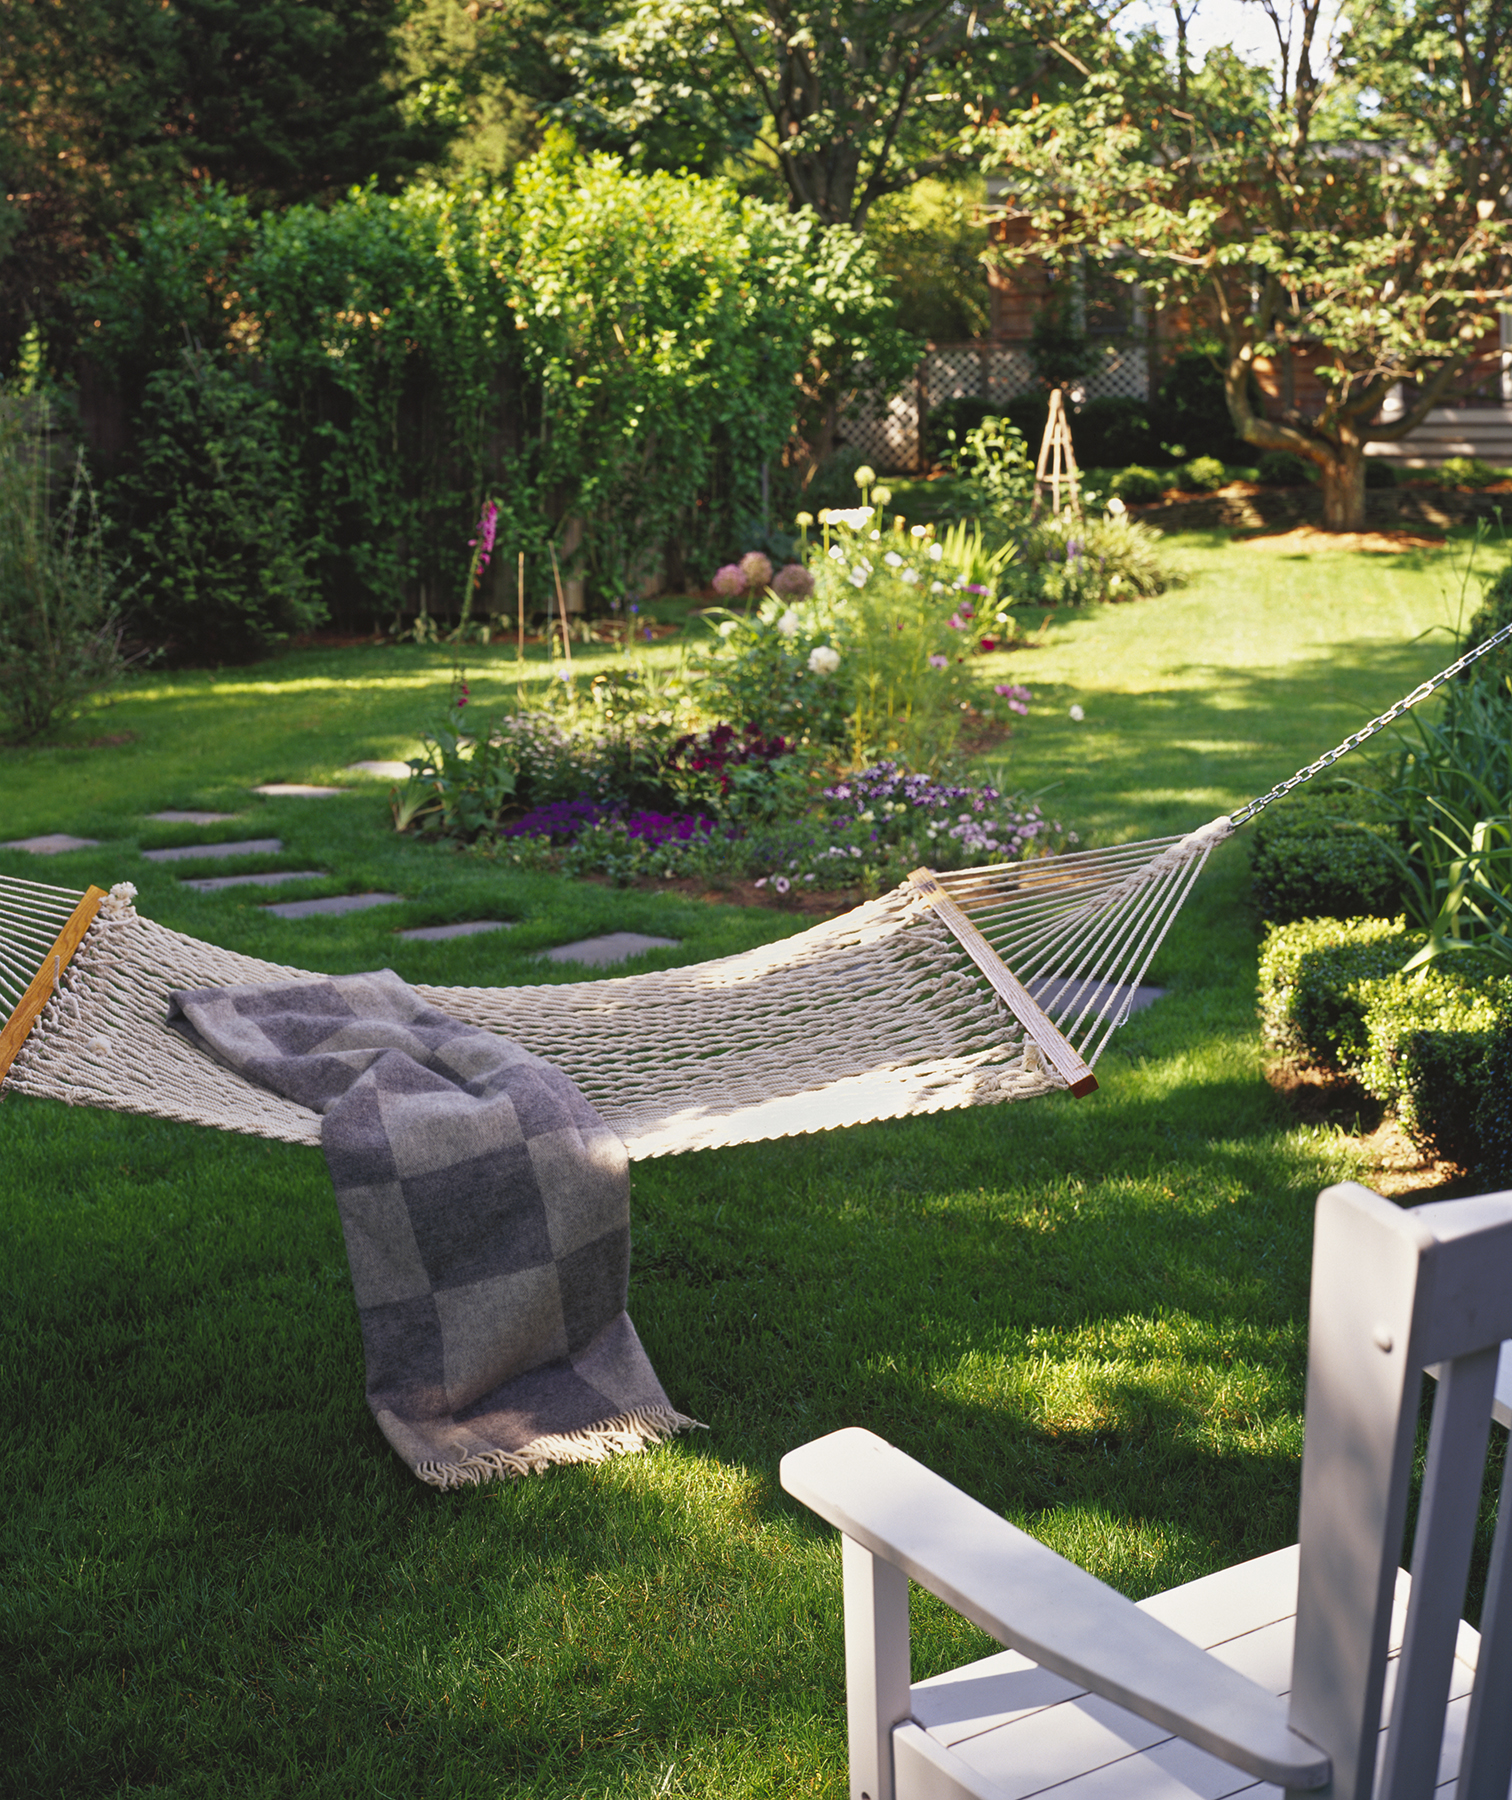 Backyard with lawn and hammock